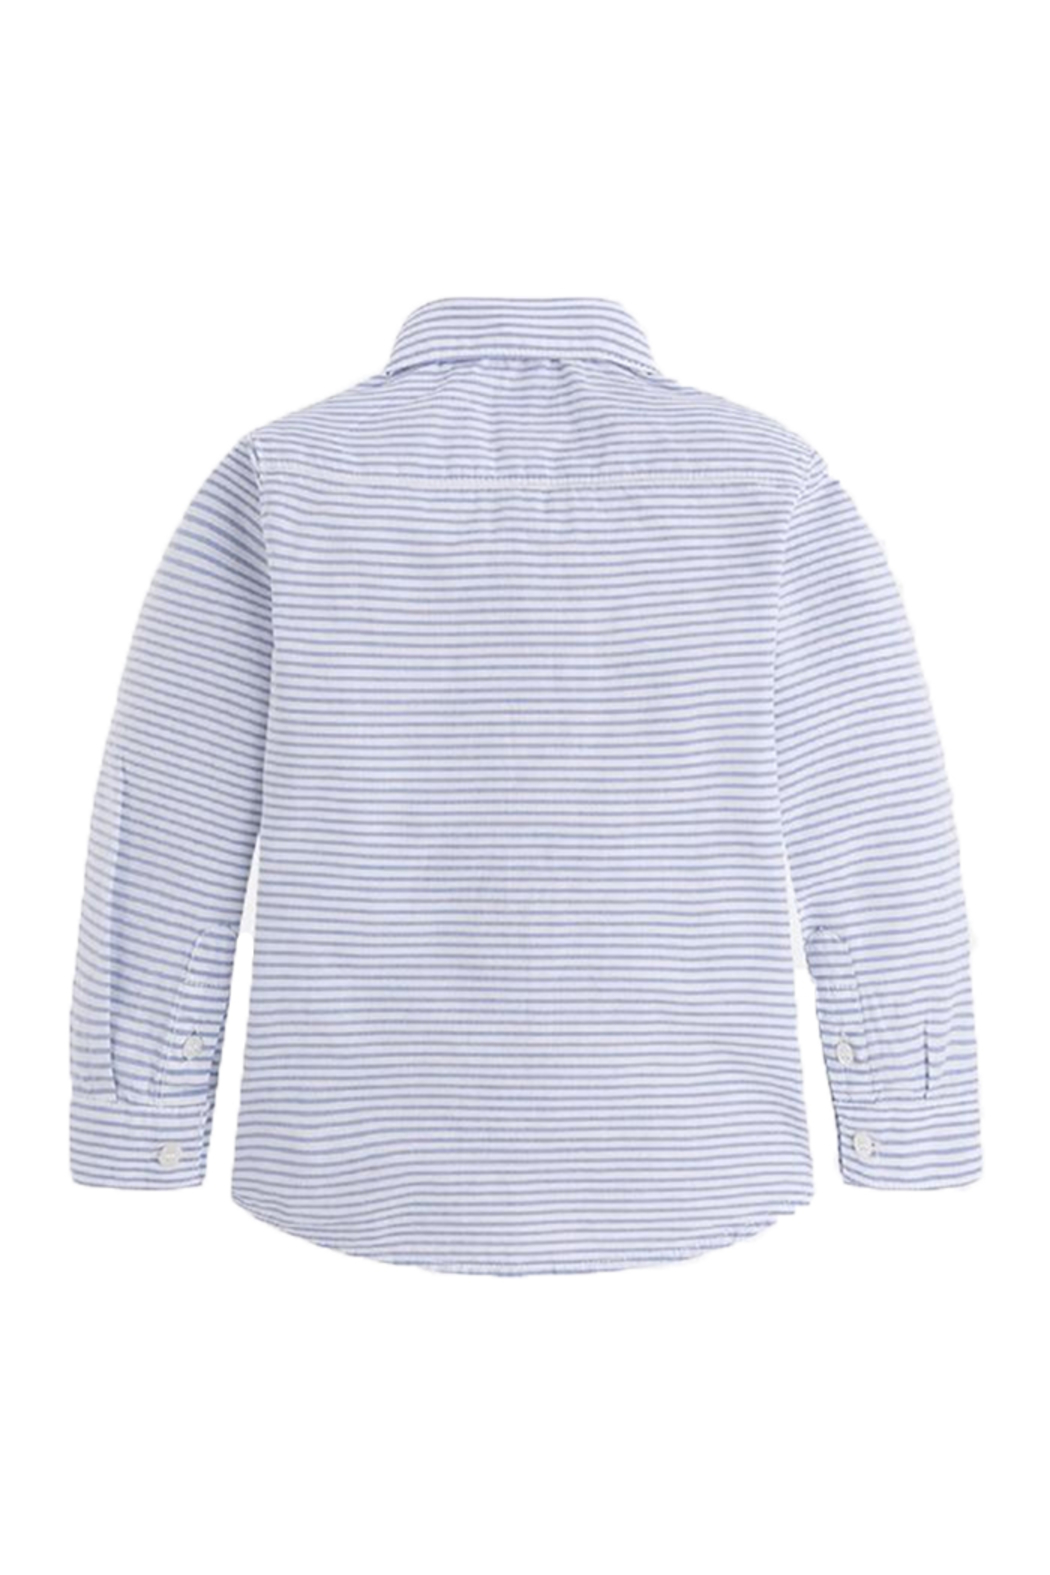 Mayoral L/s Striped Shirt - Front Full Image